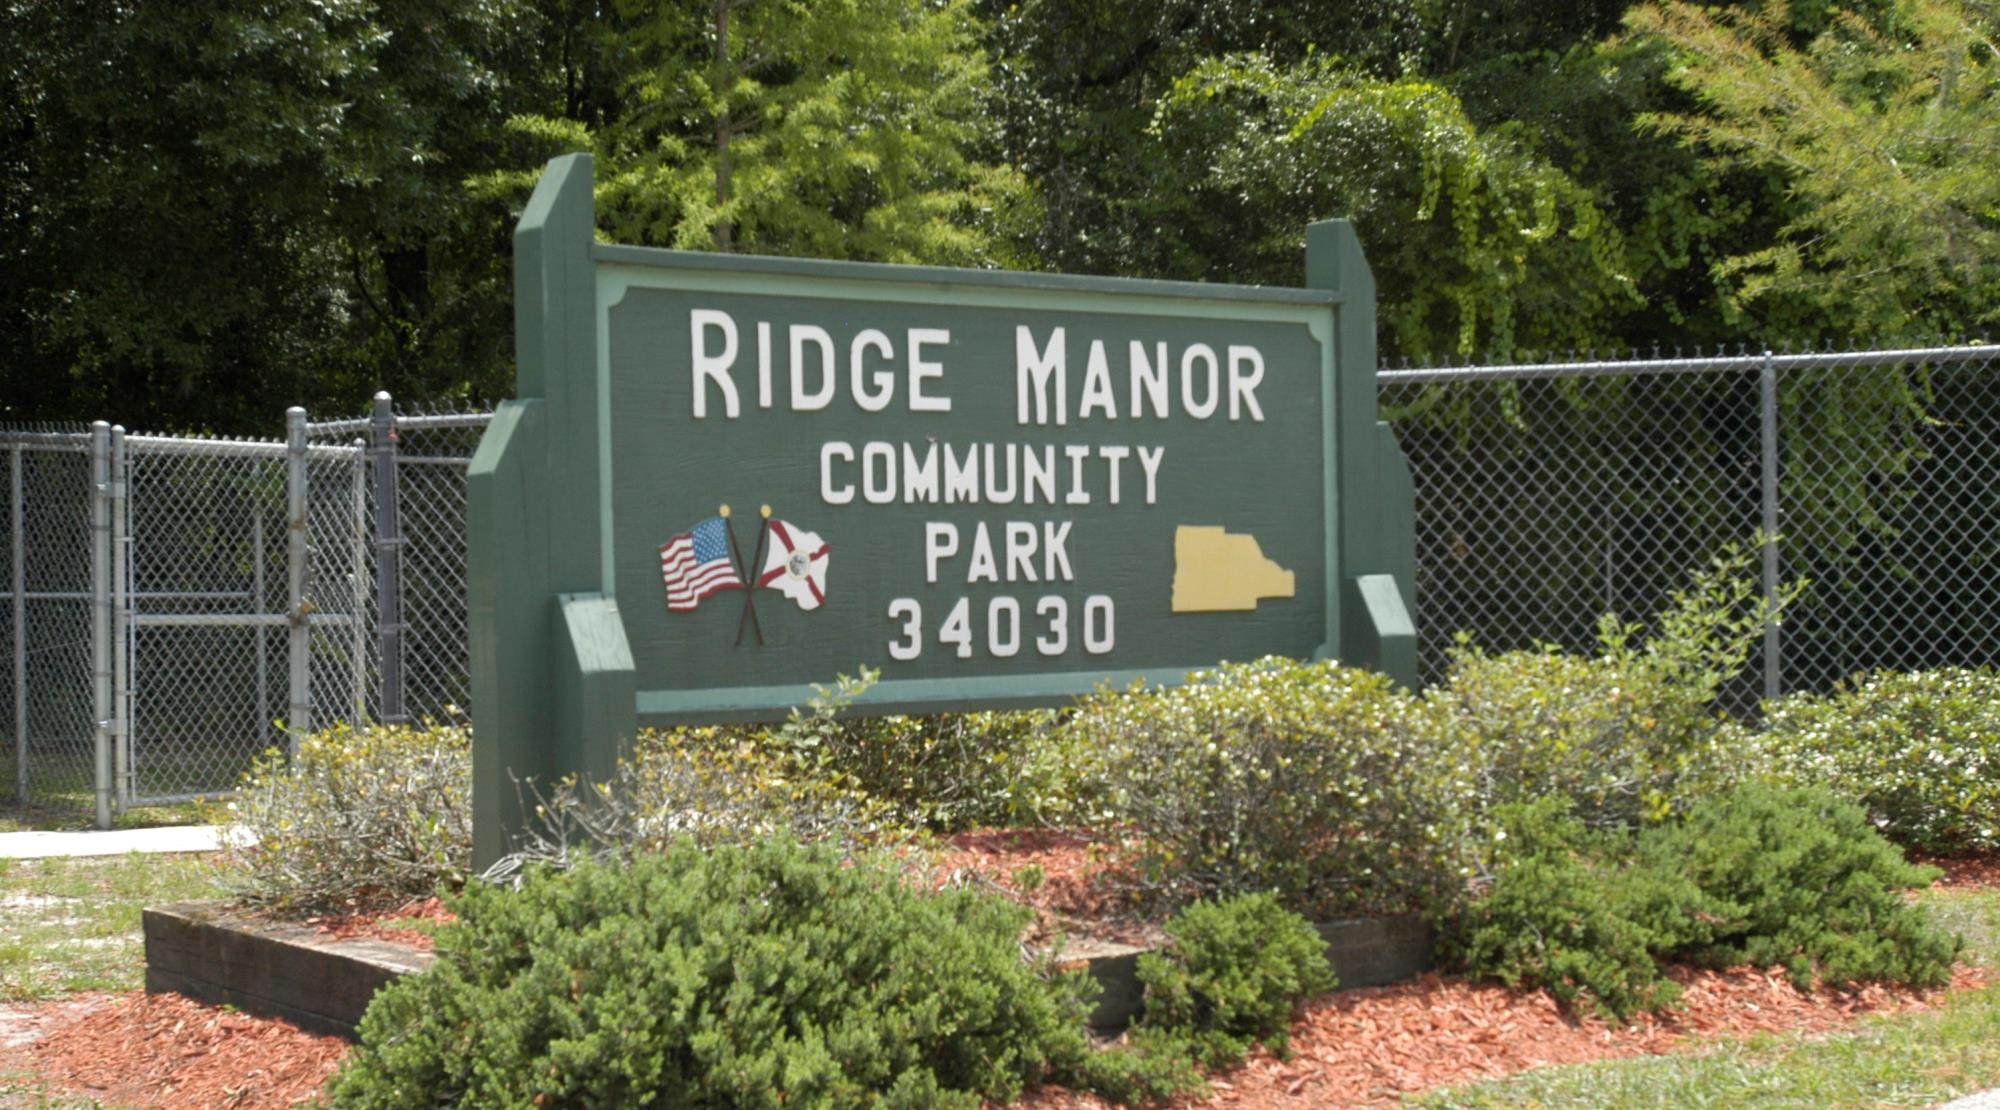 Ridge Manor Commnunity Park